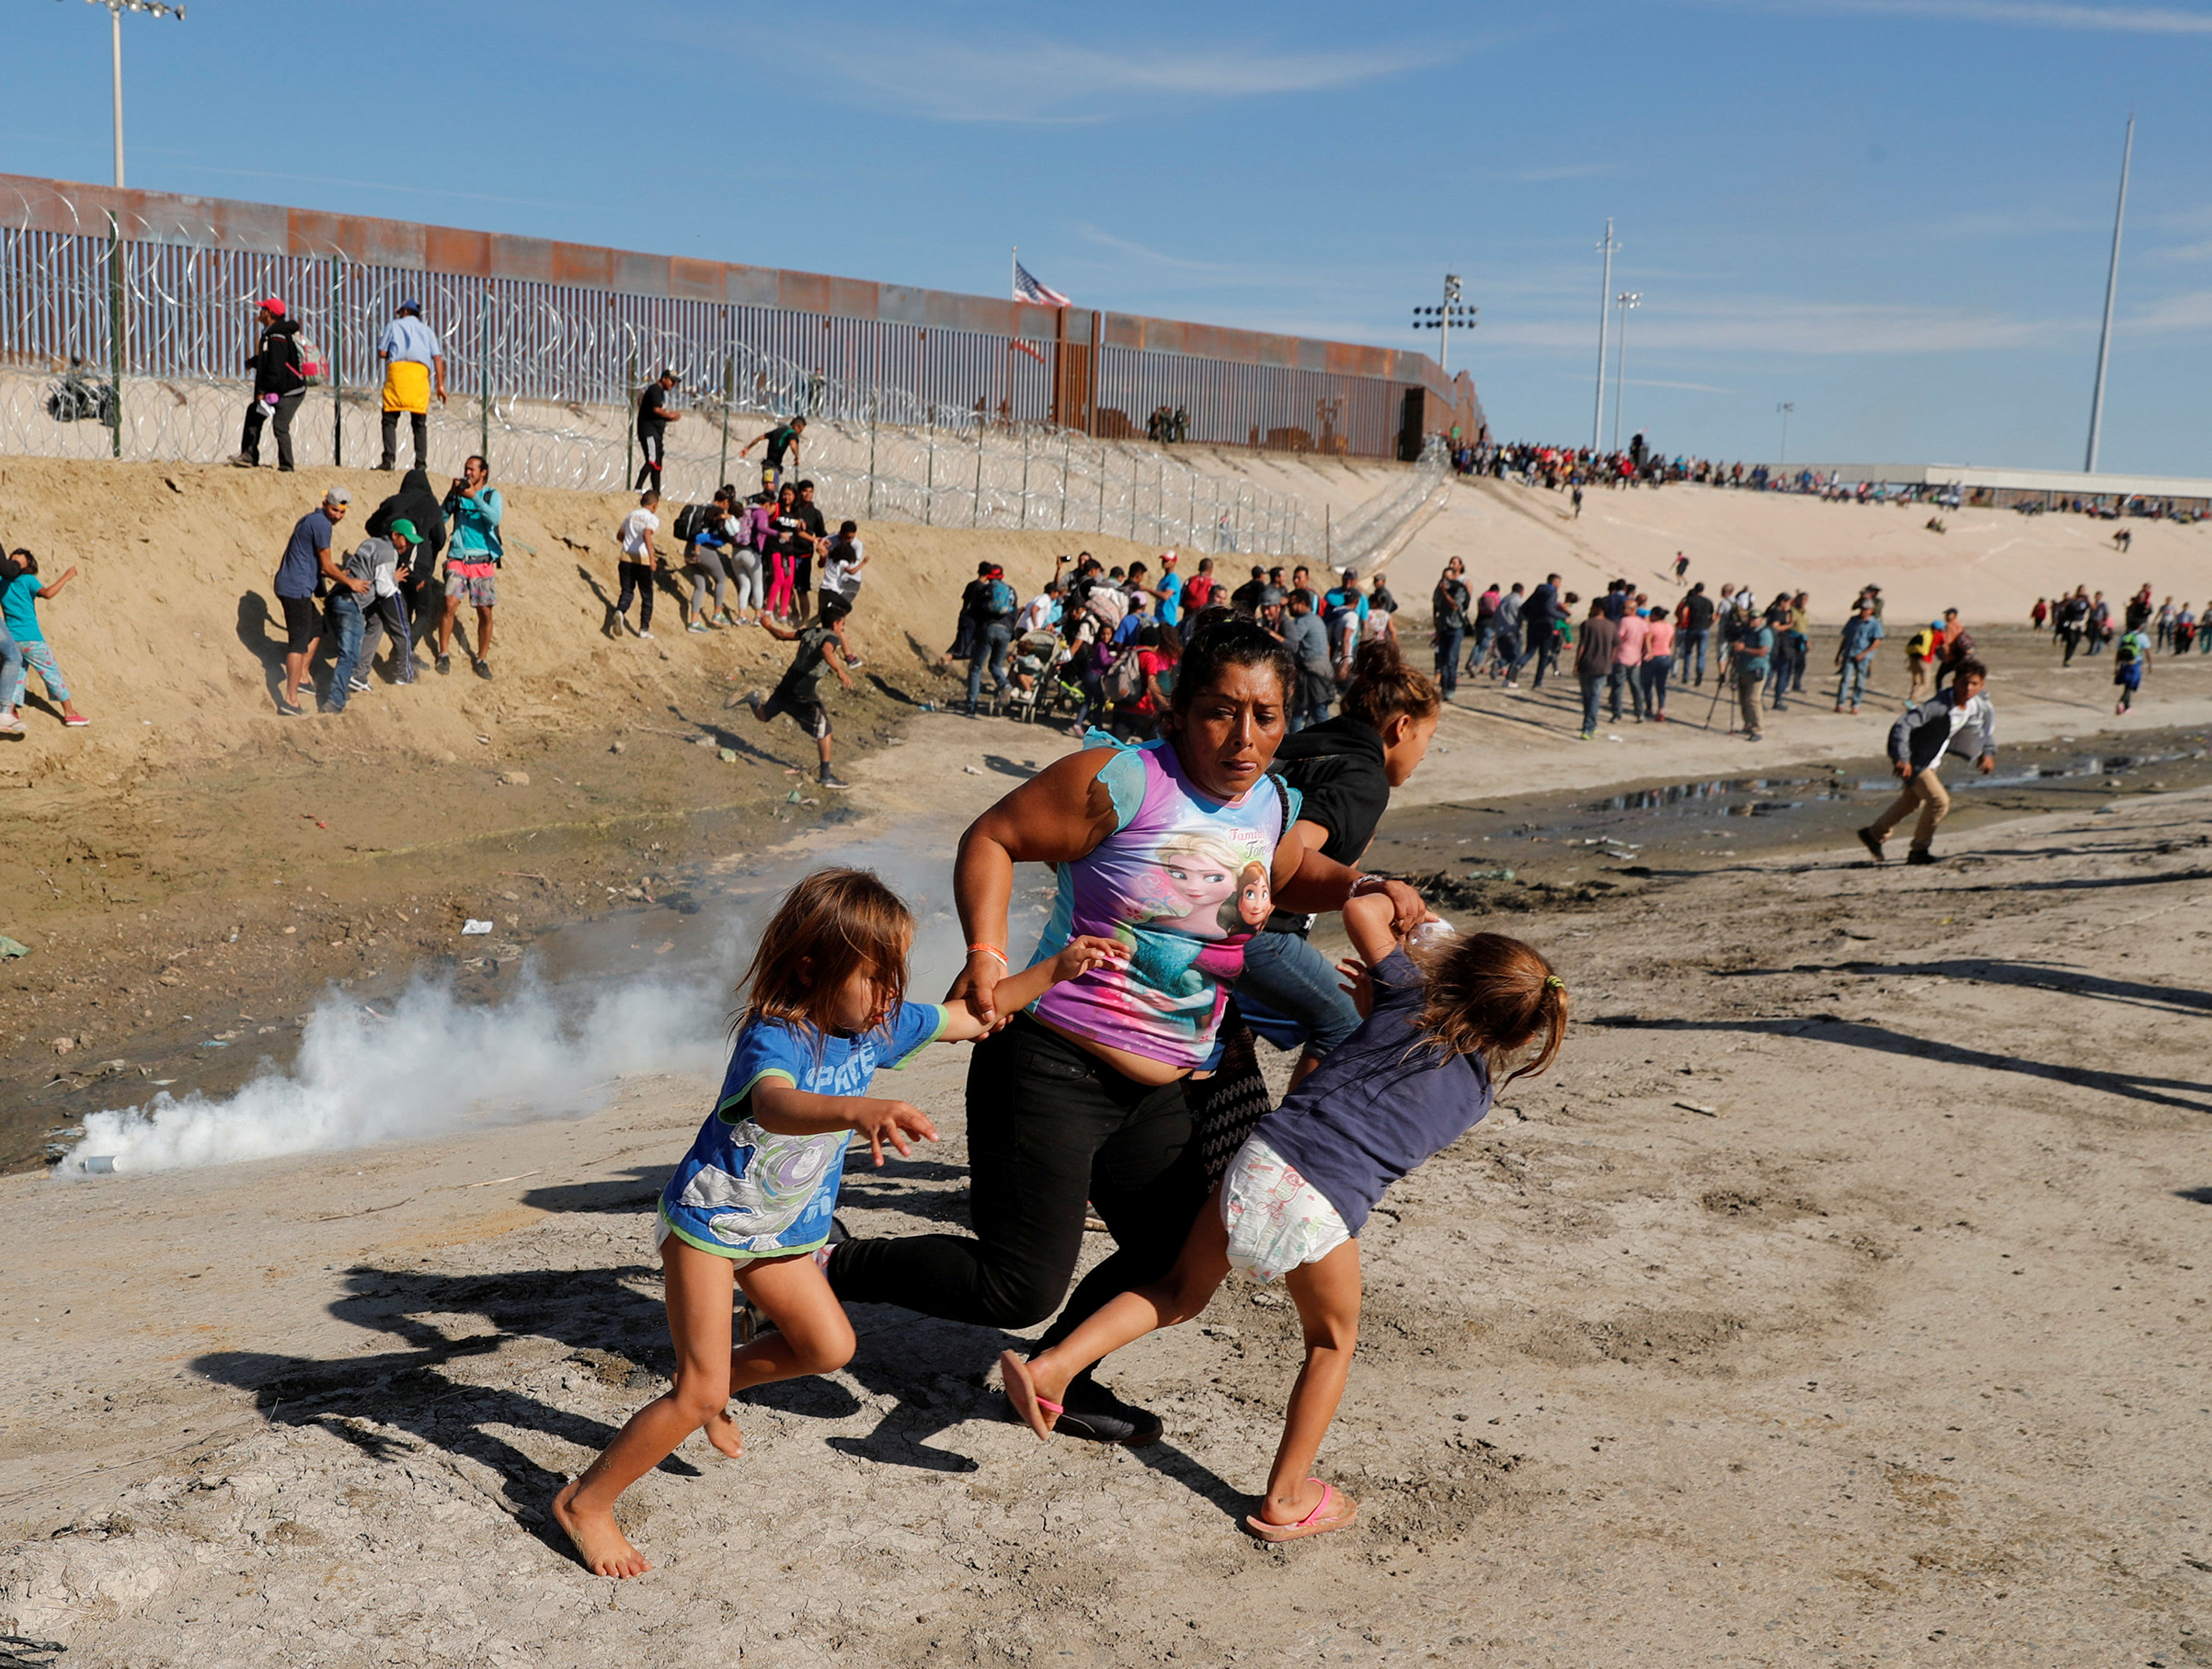 A migrant family, part of a caravan of thousands traveling from Central America to the United States, run away from tear gas in front of the border wall between the U.S. and Mexico in Tijuana, Mexico, on Nov. 25, 2018.